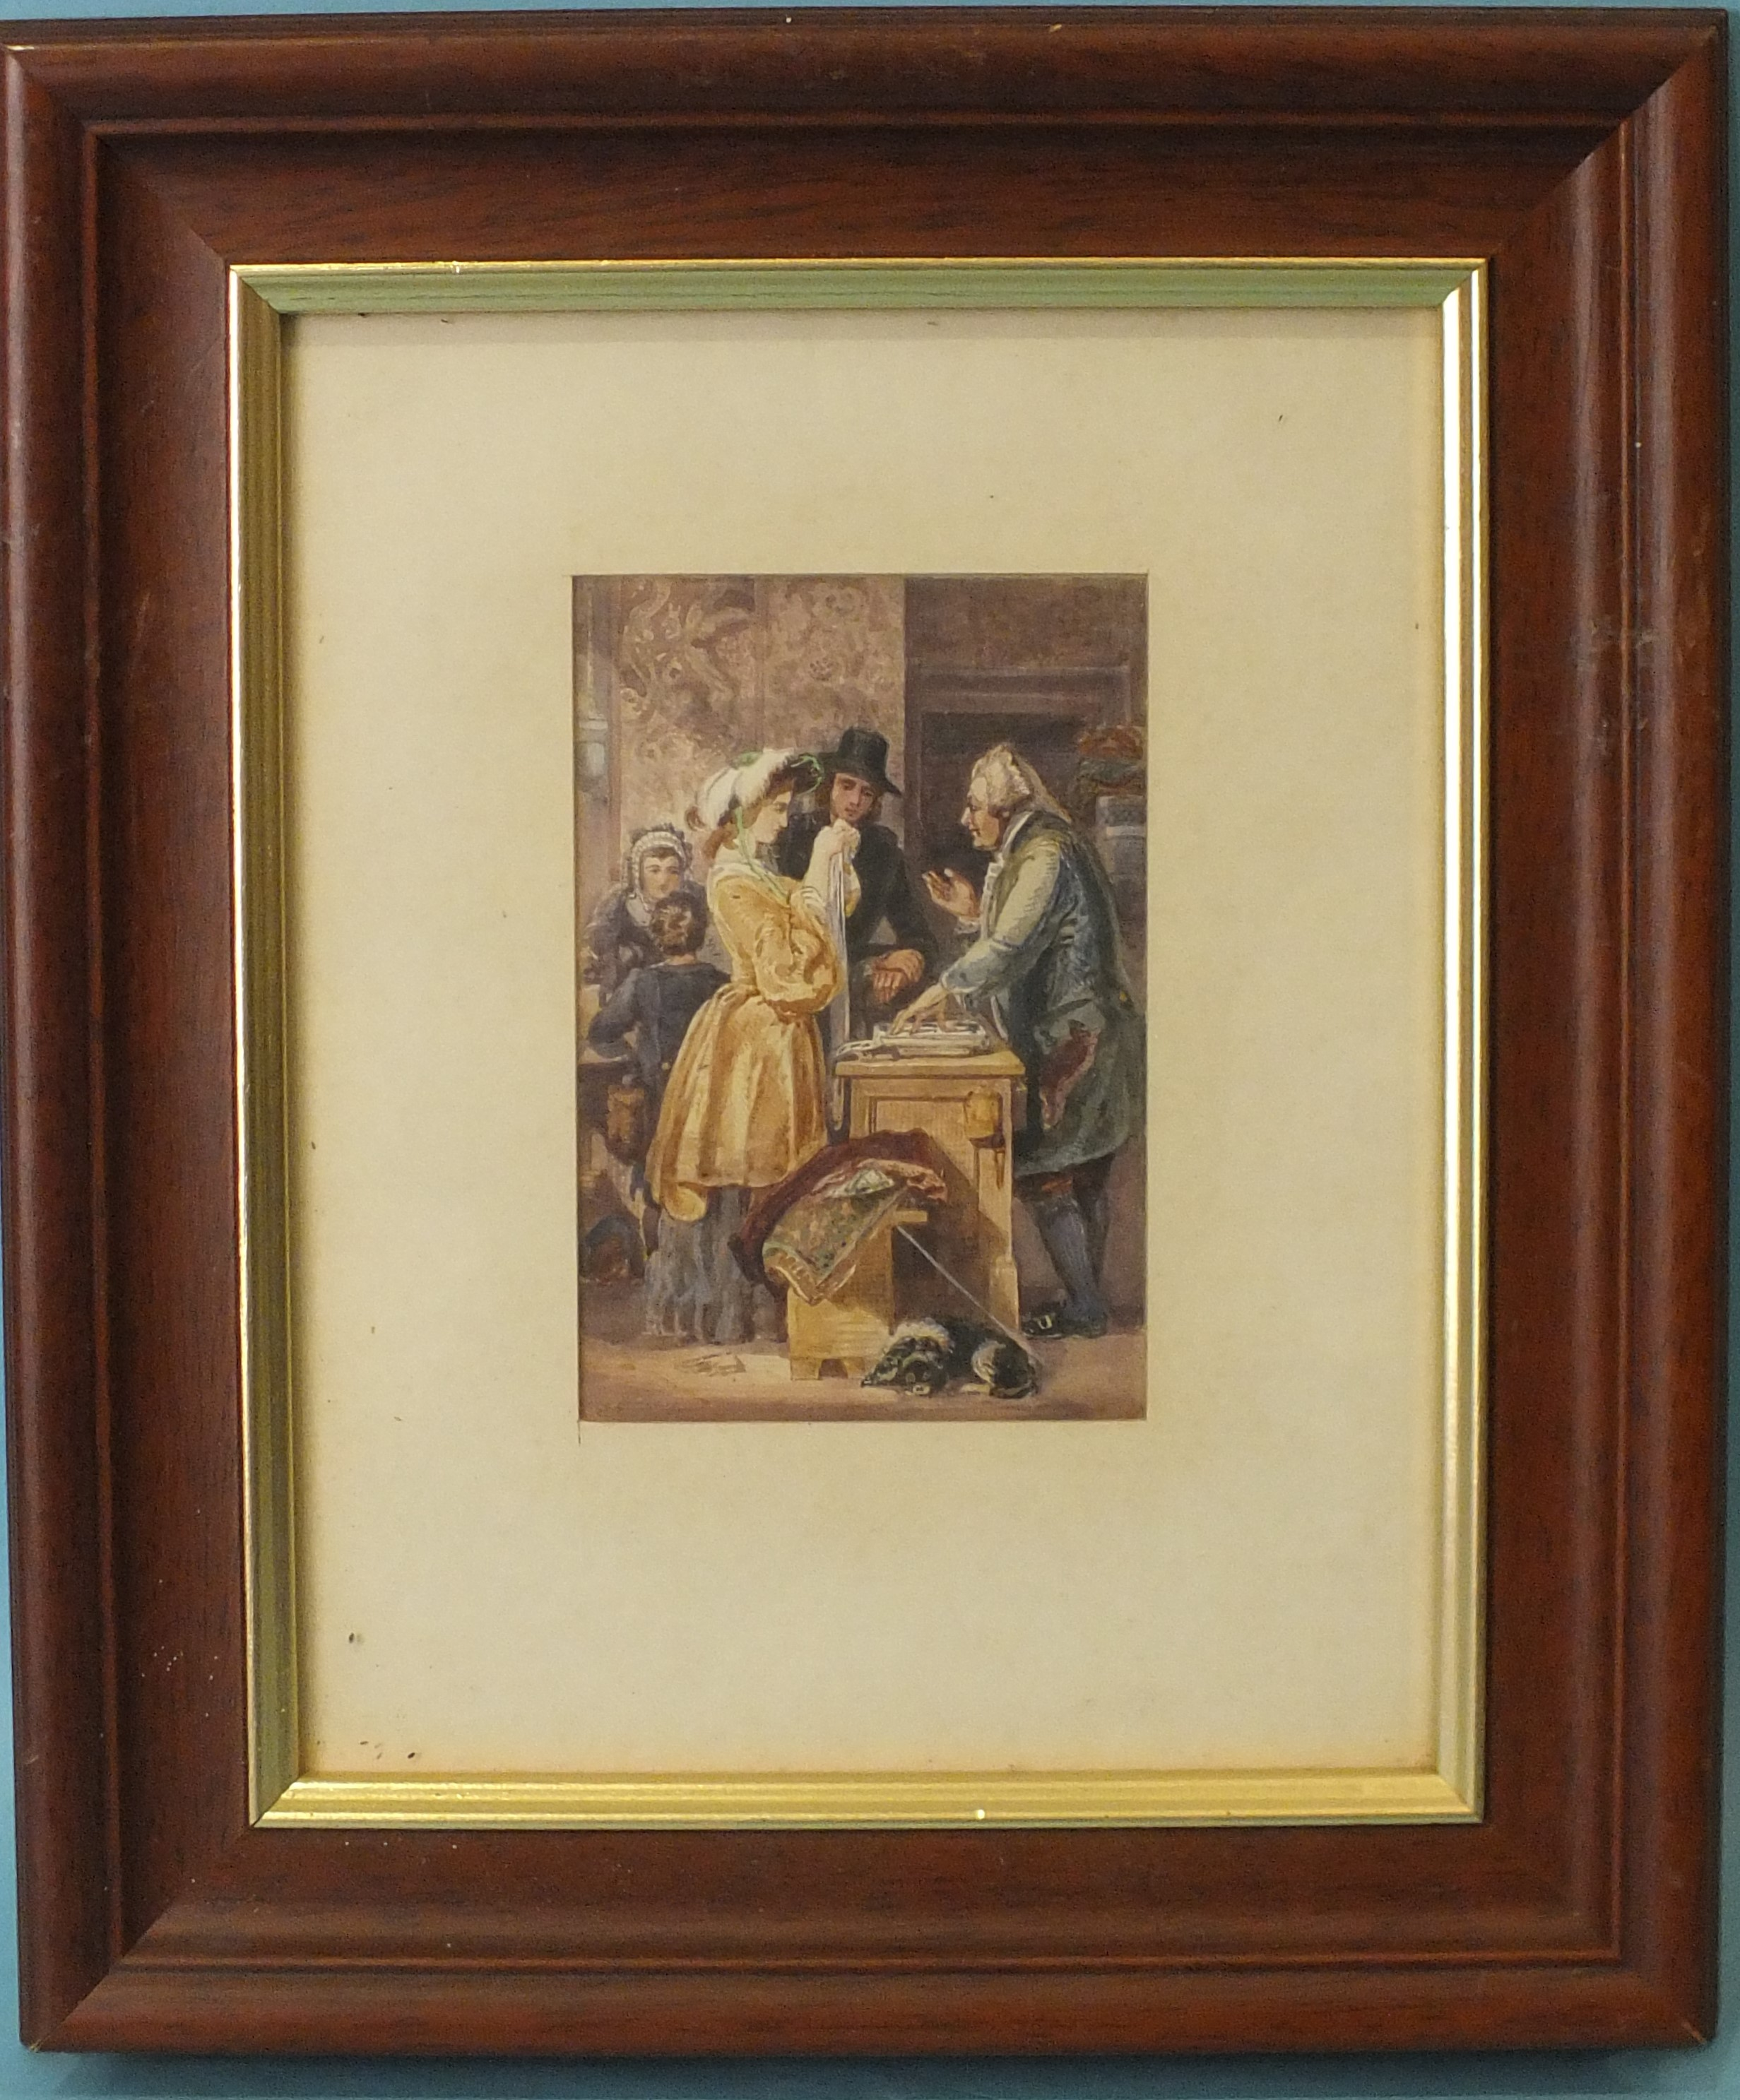 19th century THE HABERDASHERY SHOP Unsigned watercolour, 14 x 9.5cm.